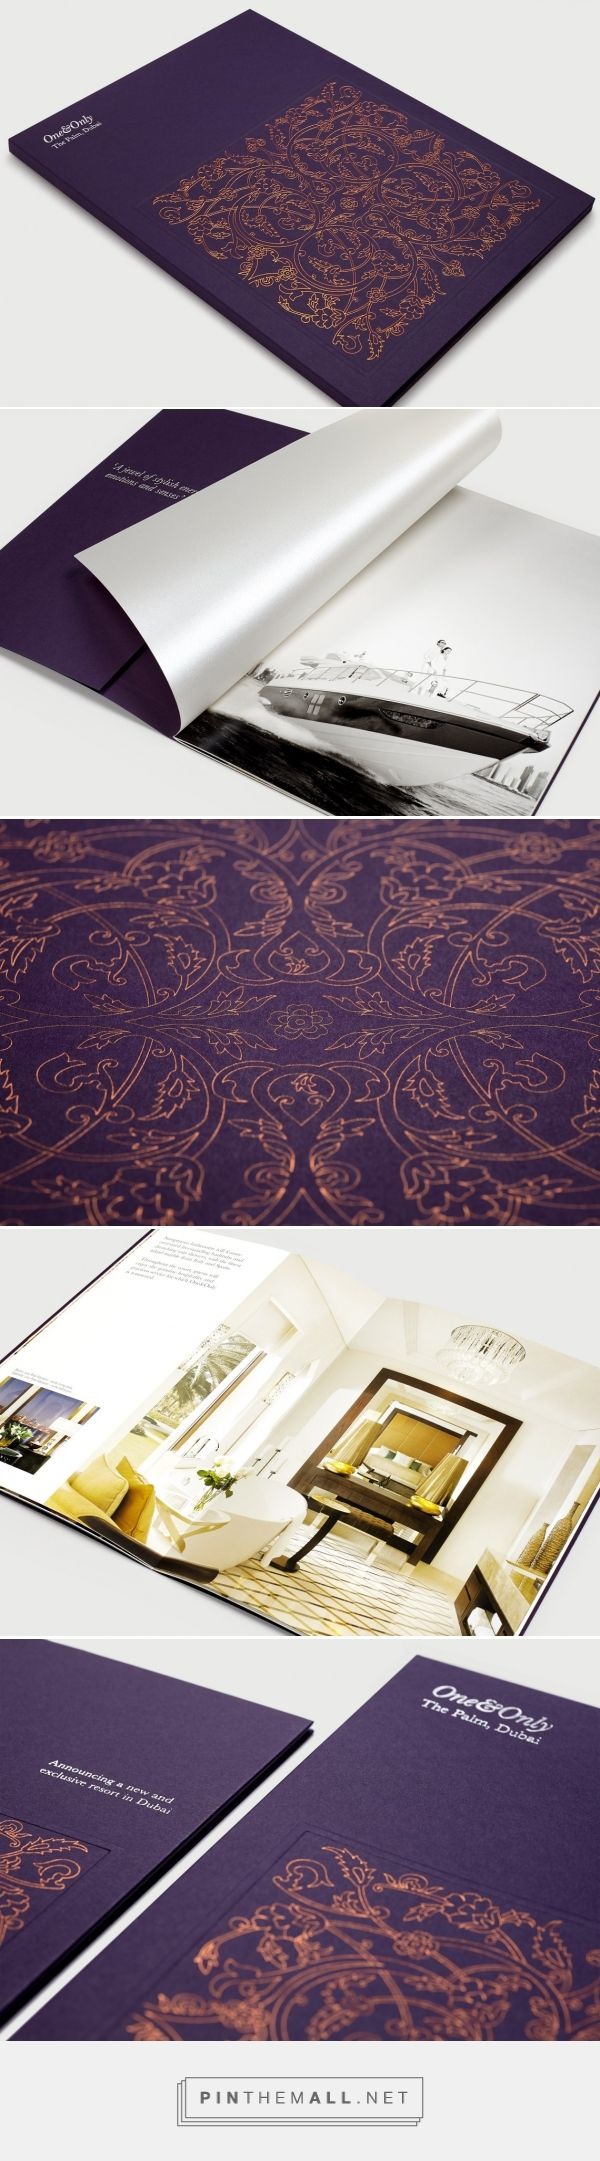 Best 25 luxury brochure ideas on pinterest premium for Luxury design consultancy